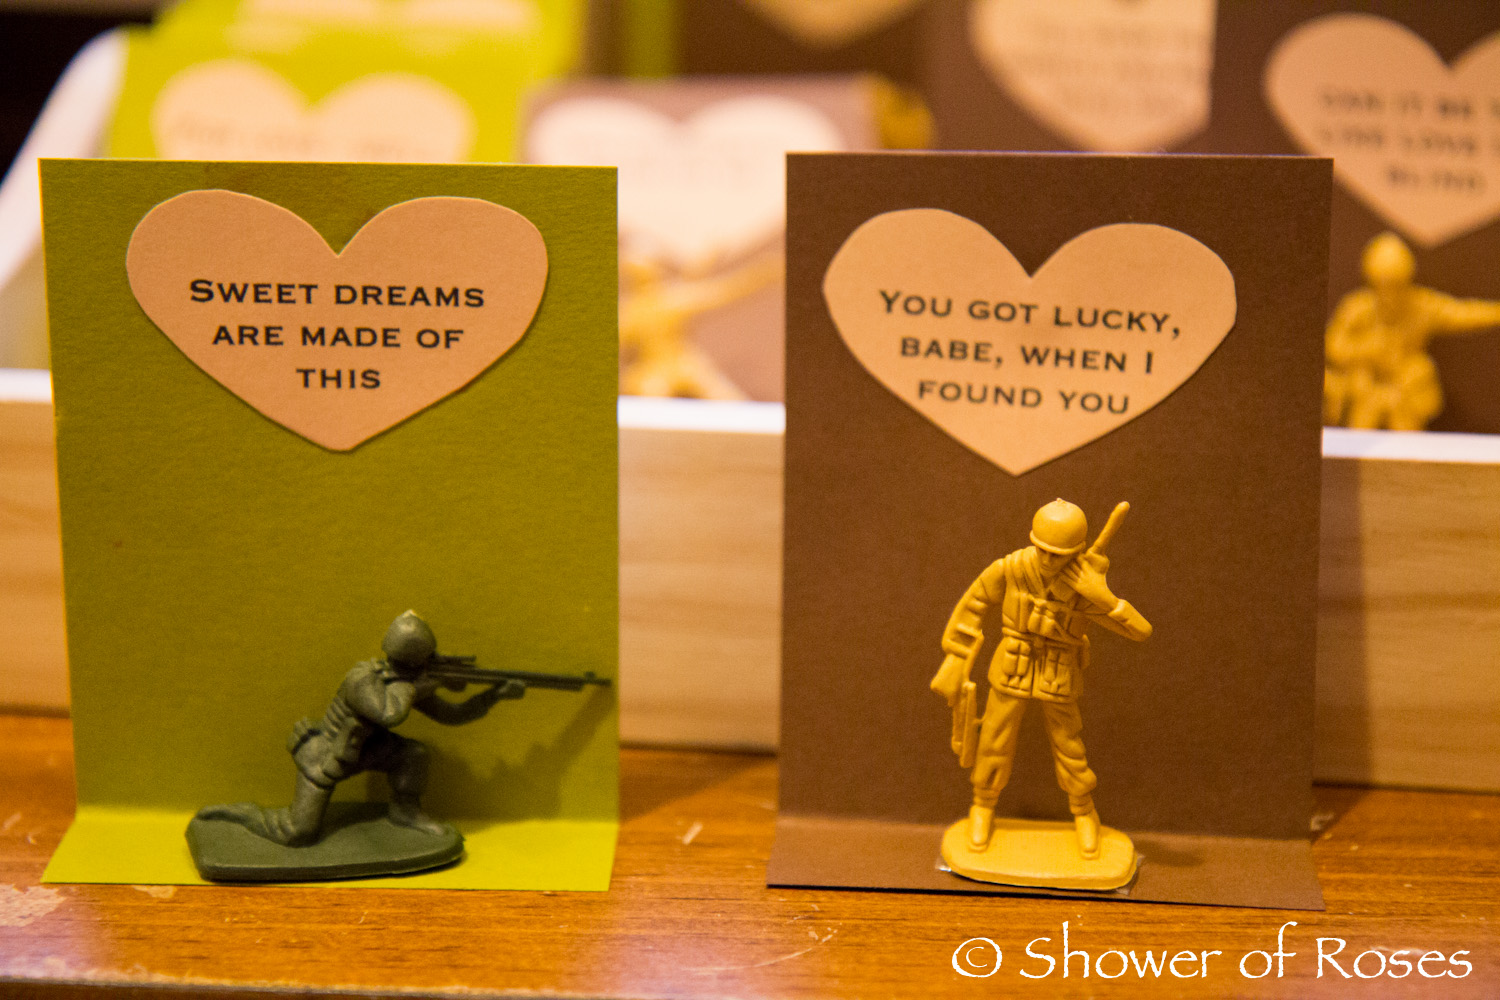 Shower of Roses: St. Valentine's Day Cards & Party - photo#11